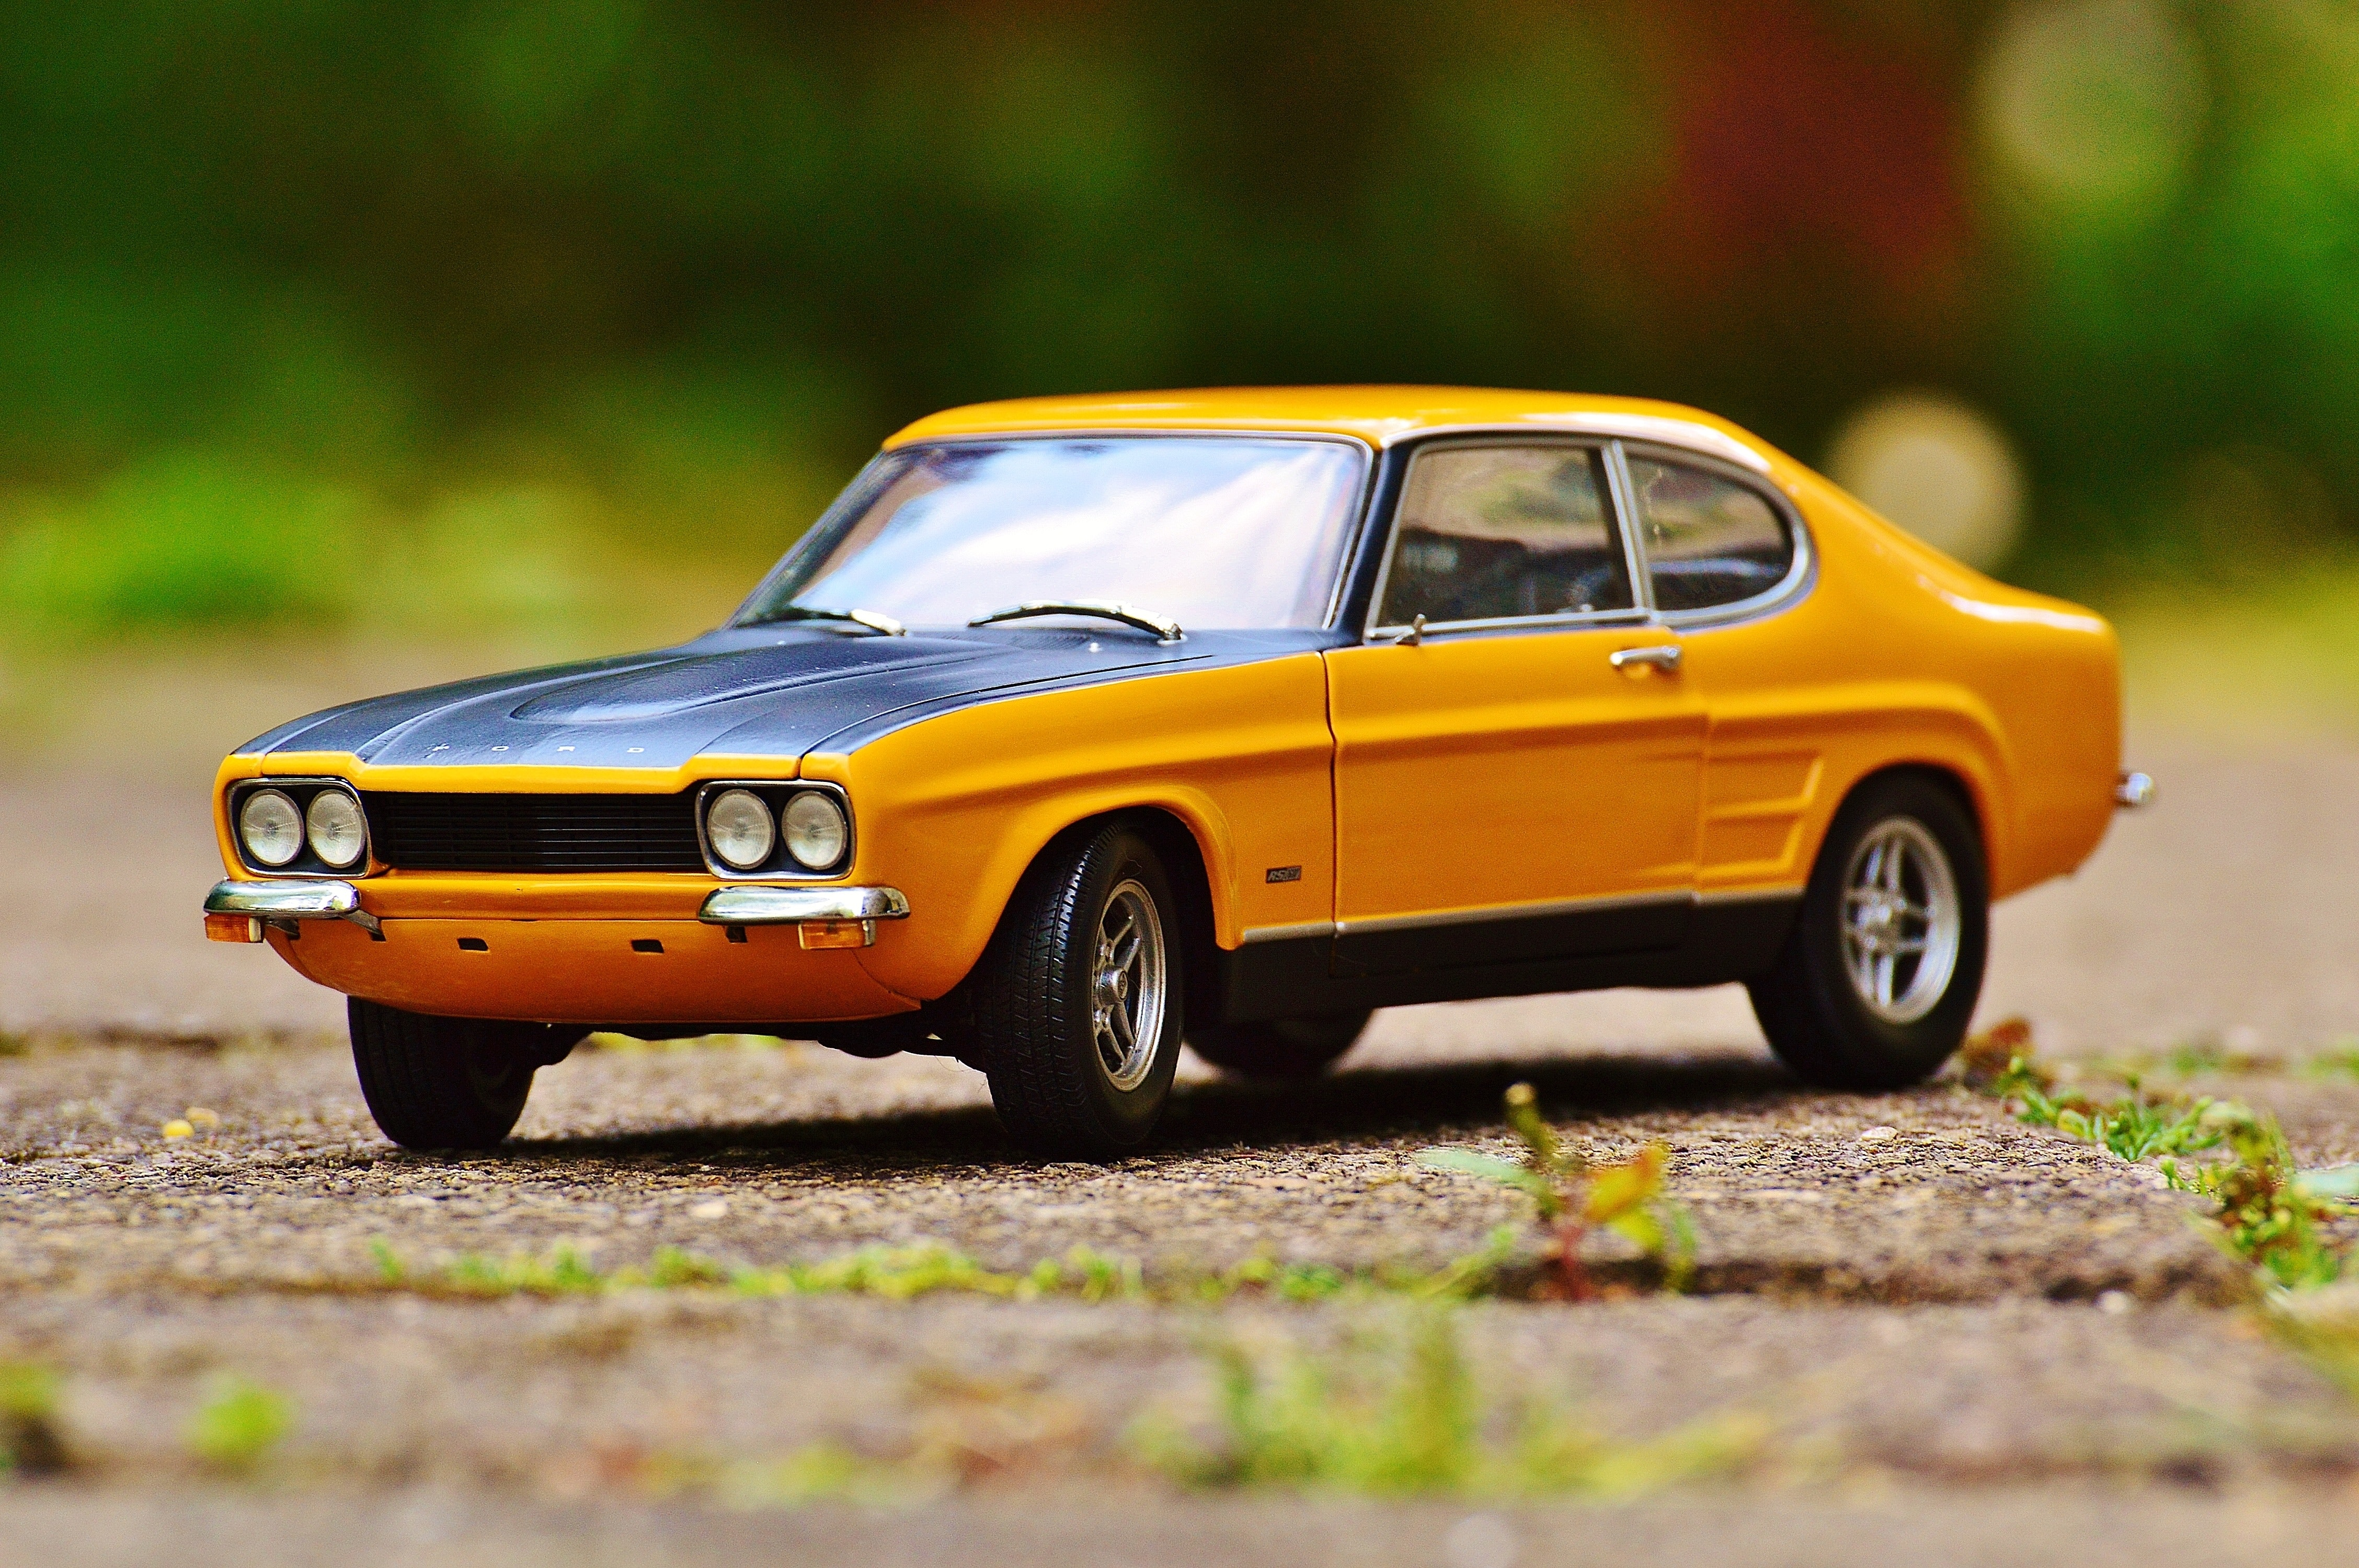 Yellow And Black Muscle Car In Tilt Shift Photography Free Stock Photo